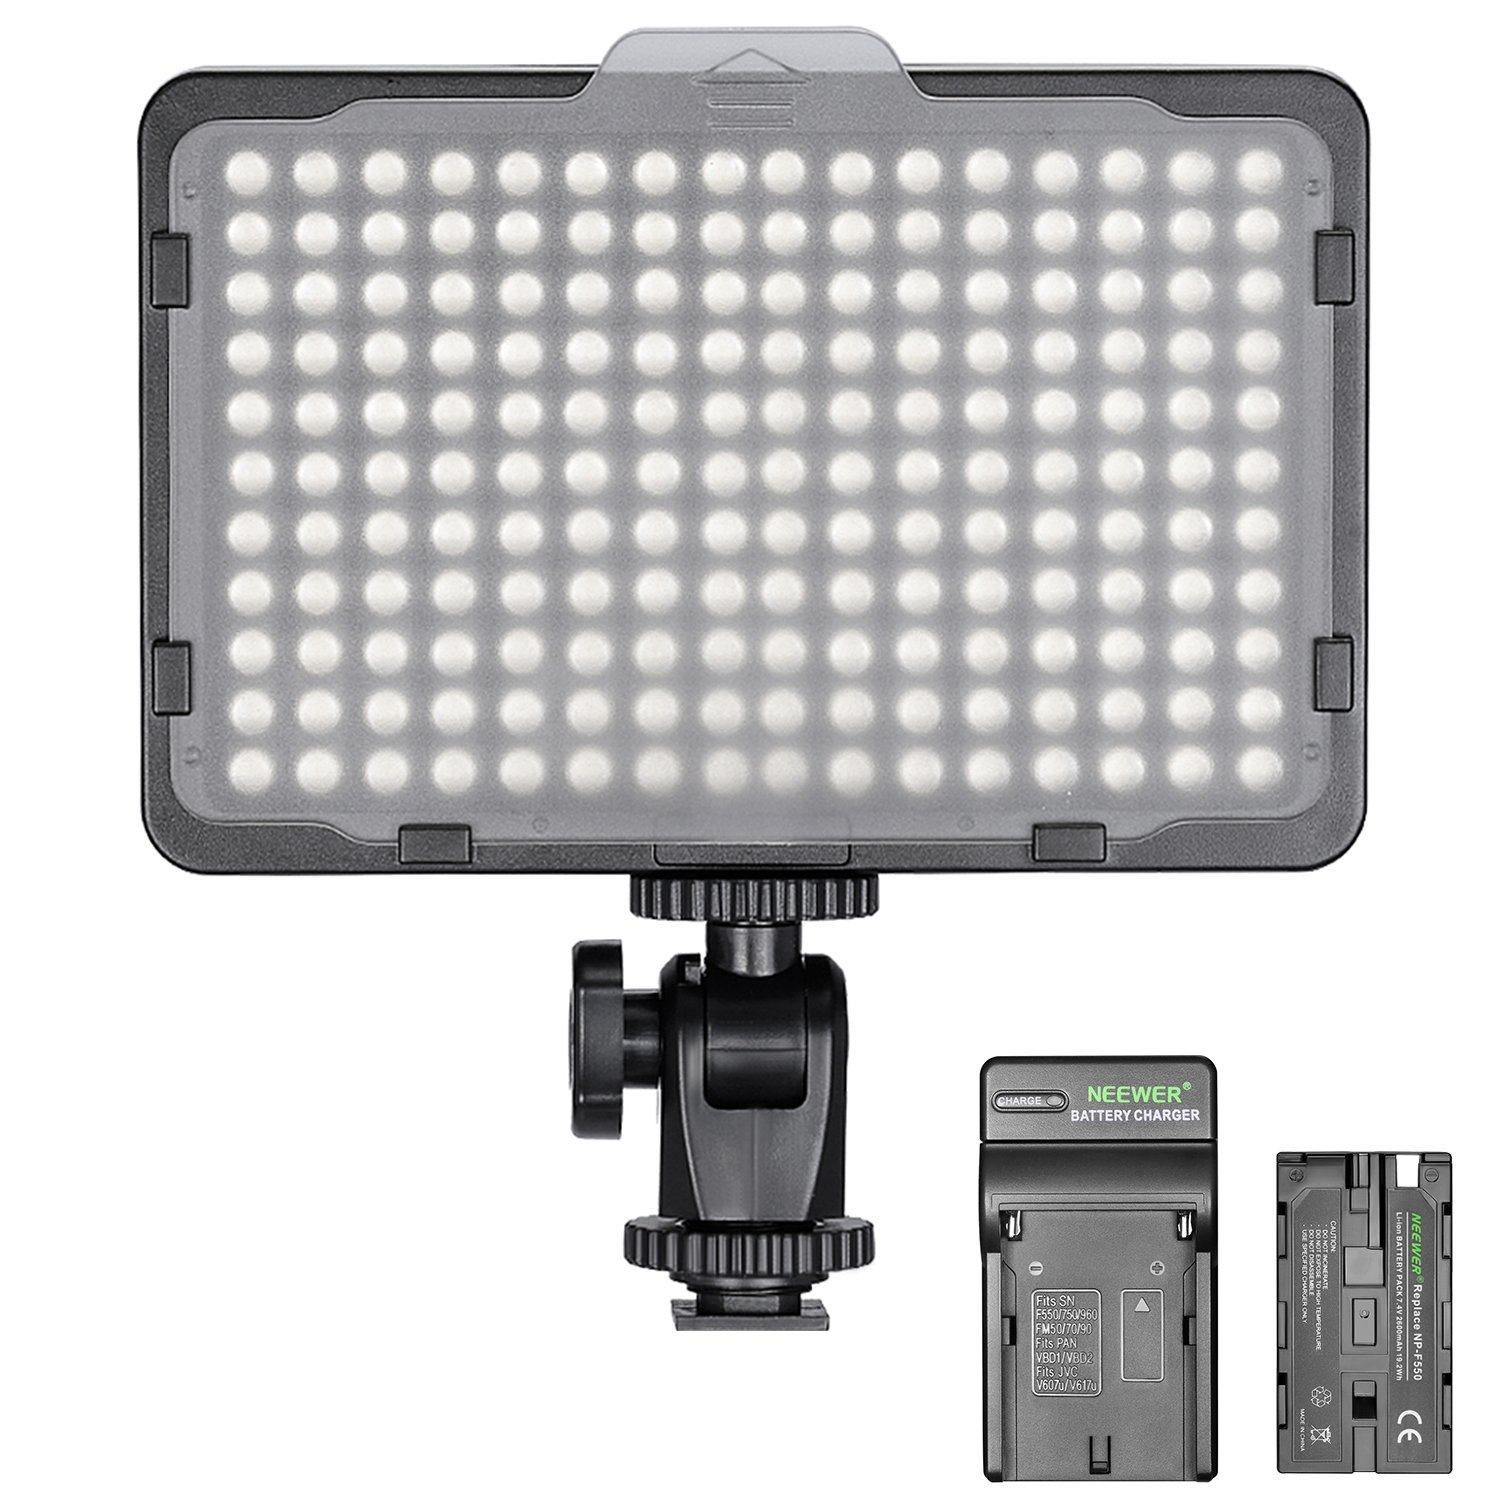 Neewer Dimmable 176 LED Video Light on Camera LED Panel with 2600mAh Li-ion Battery and Charger for Canon, Nikon, Samsung, Olympus and Other Digital SLR Cameras for Photo Studio Video Photography